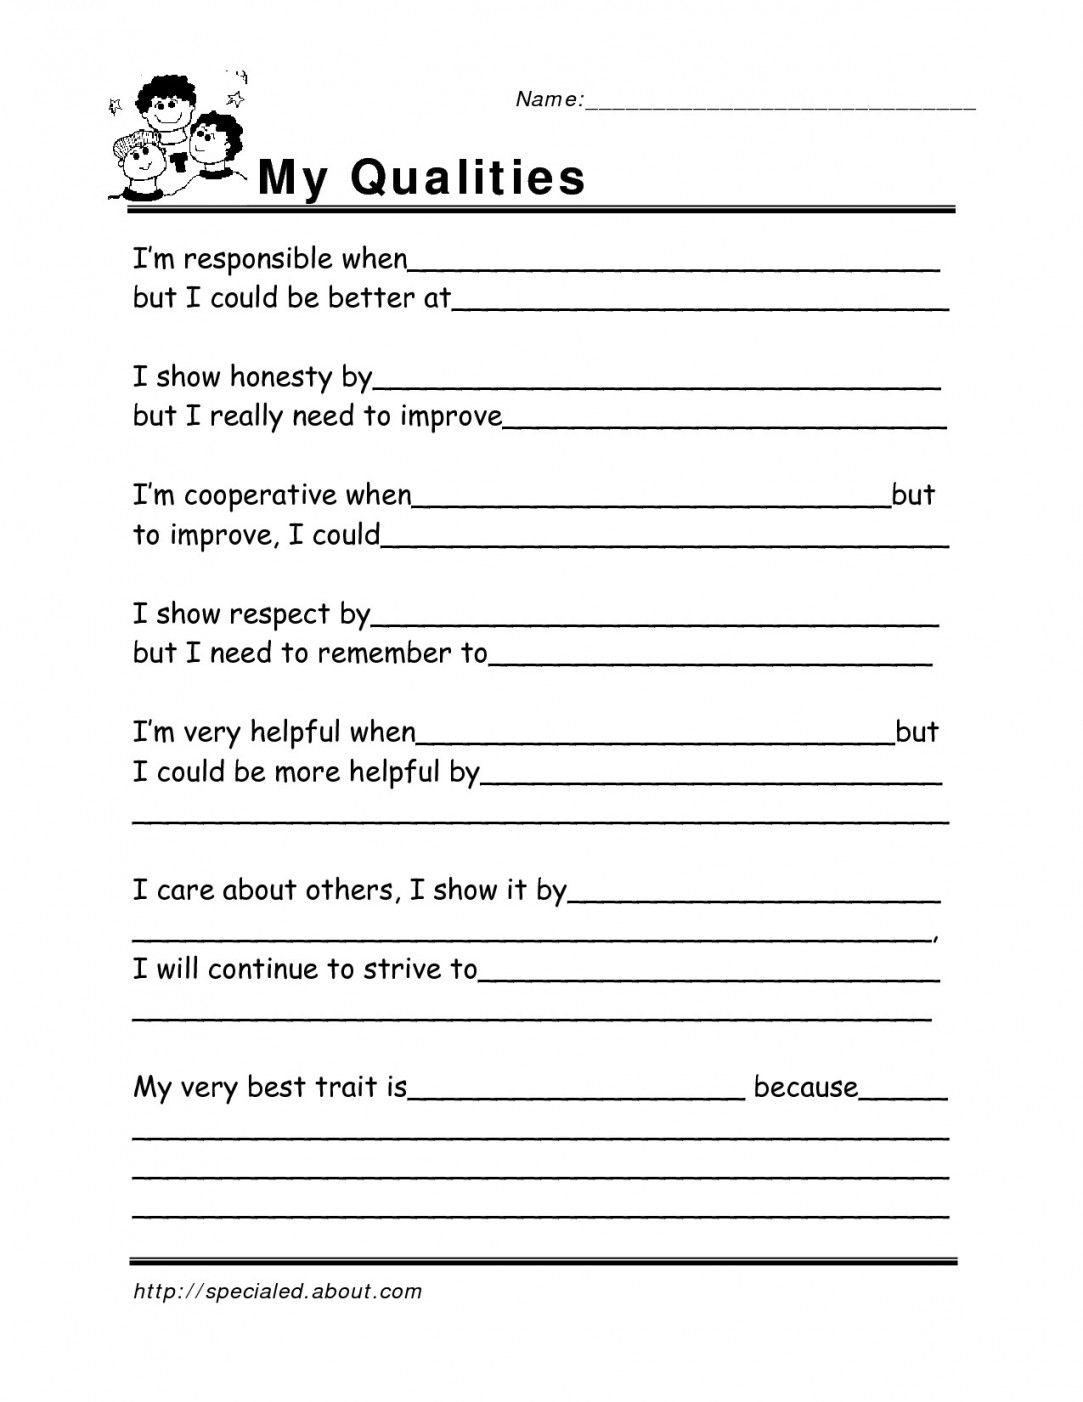 Free Printable Life Skills Worksheets For Adults | Lostranquillos - Free Printable Life Skills Worksheets For Adults